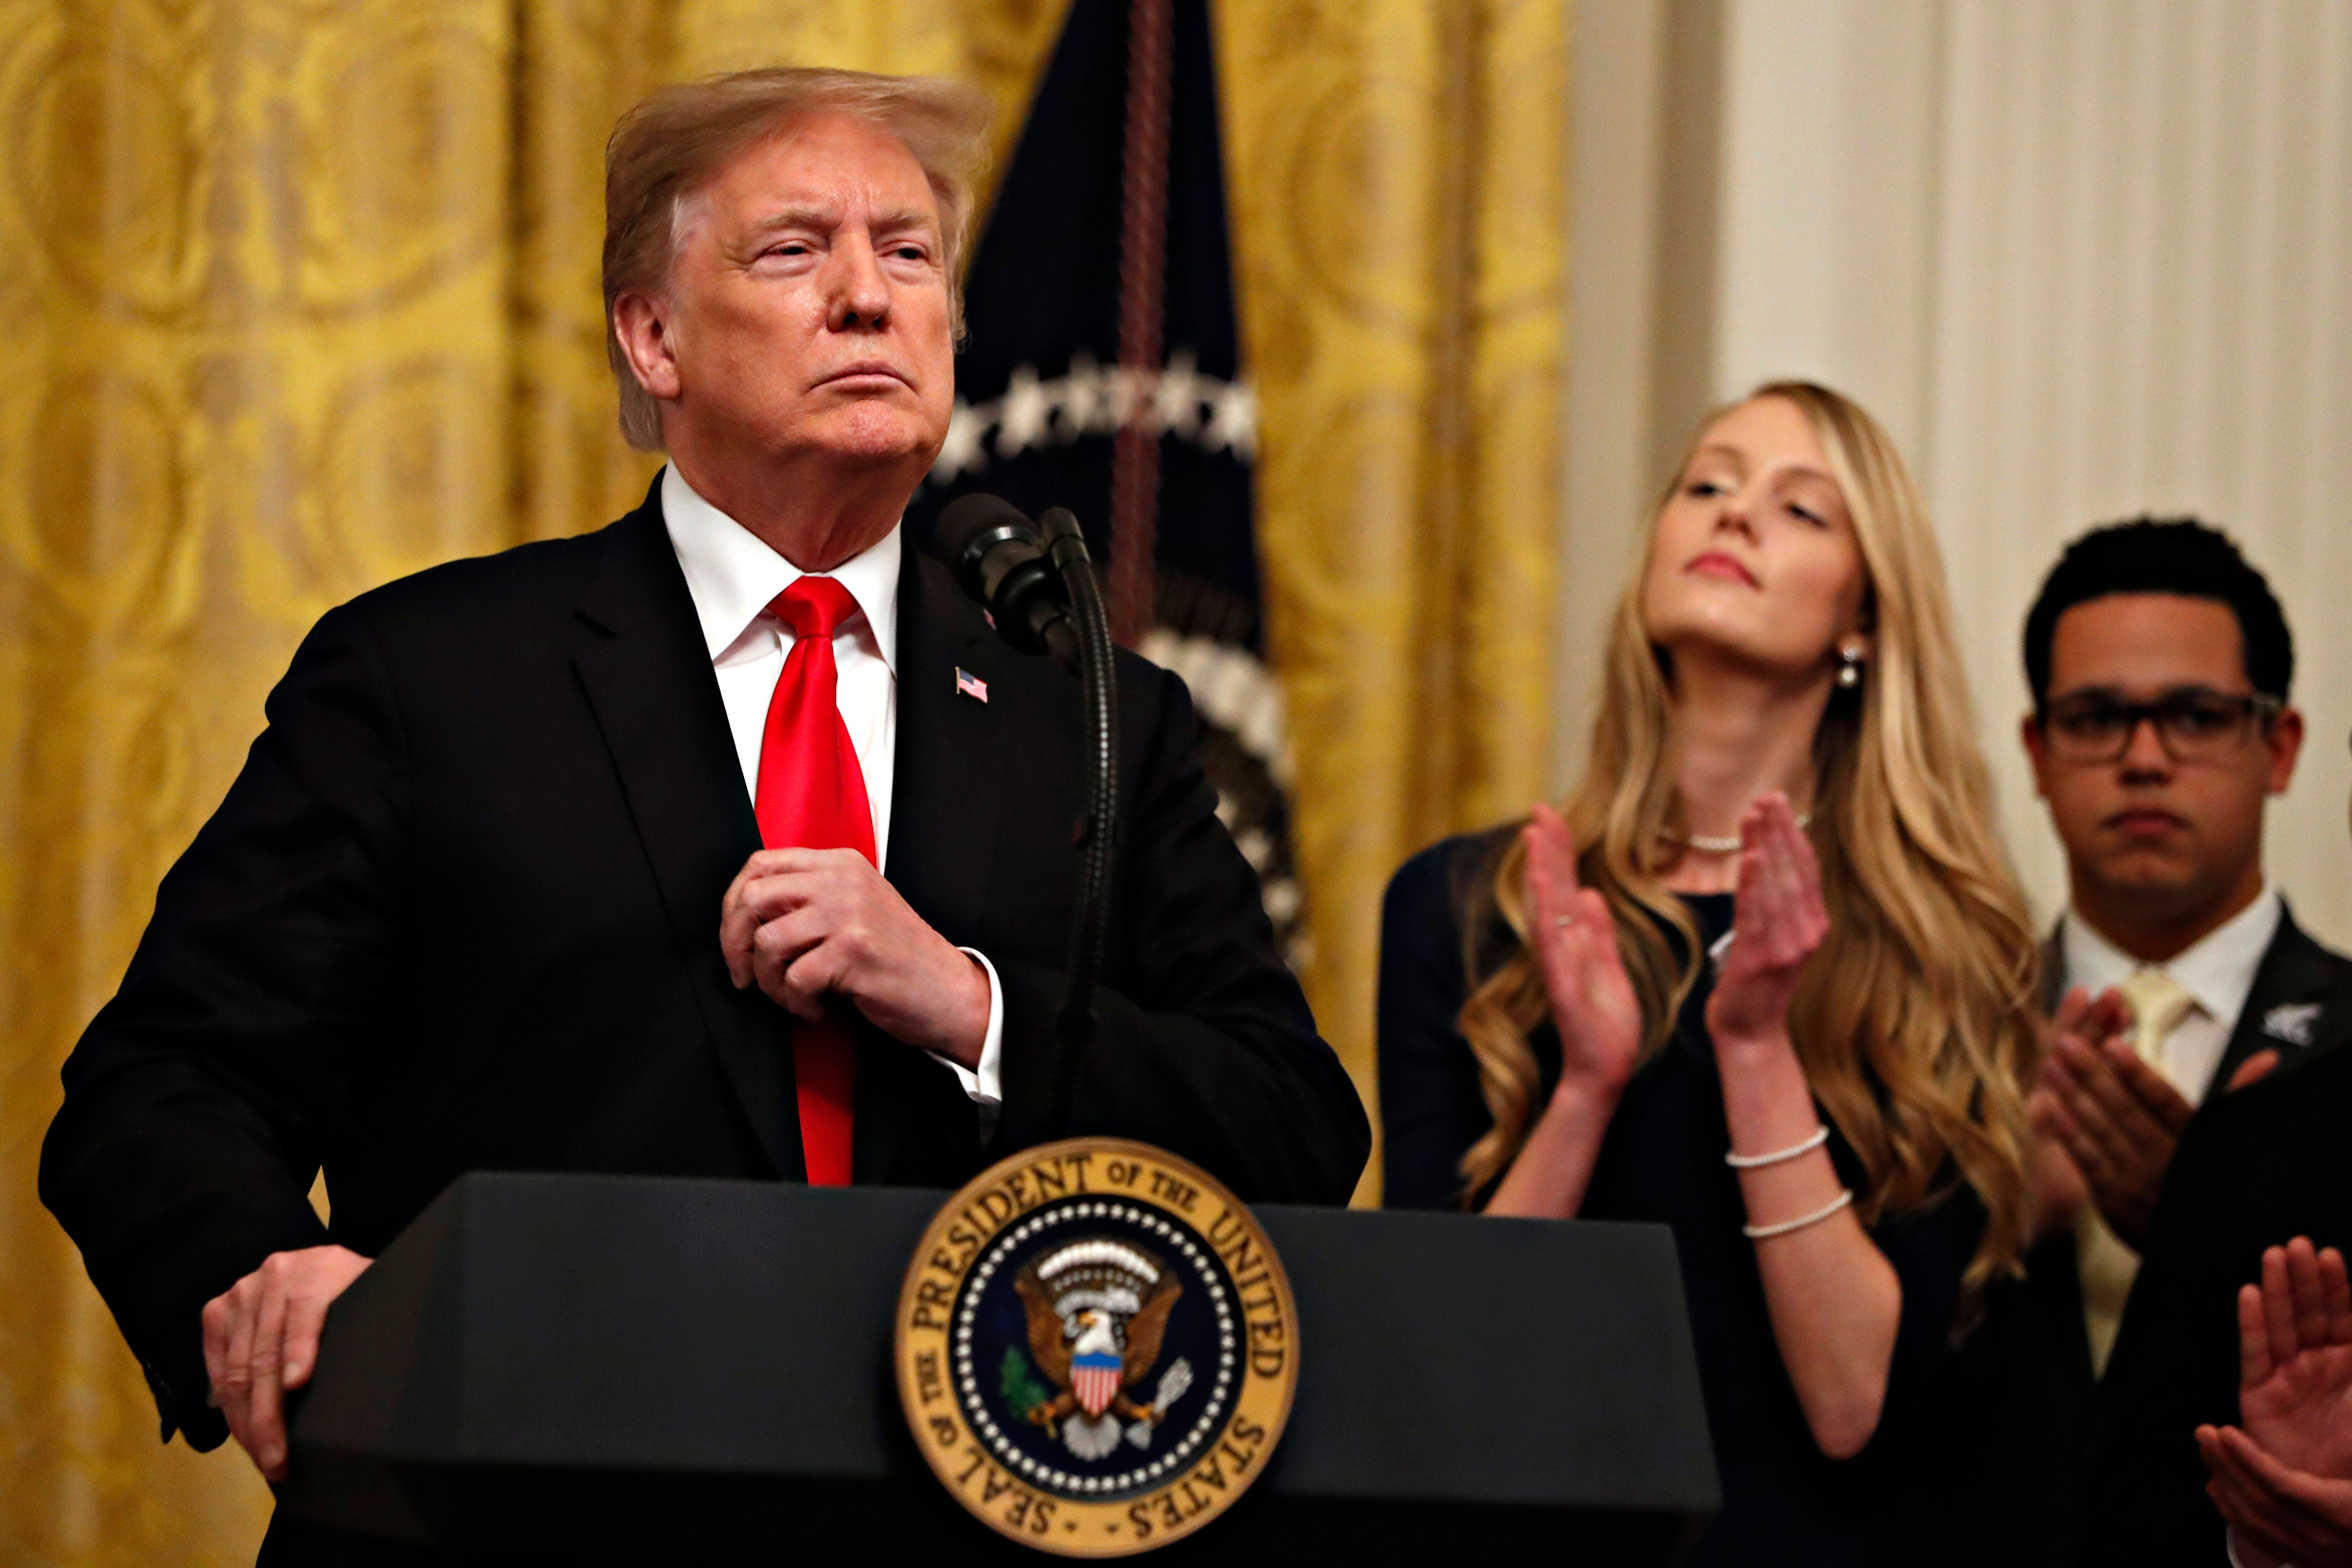 President Donald Trump adjusts his blazer as he speaks before signing an executive order requiring colleges to certify that their policies support free speech as a condition of receiving federal research grants, Thursday March 21, 2019, in the East Room of the White House in Washington. (AP Photo/Jacquelyn Martin)